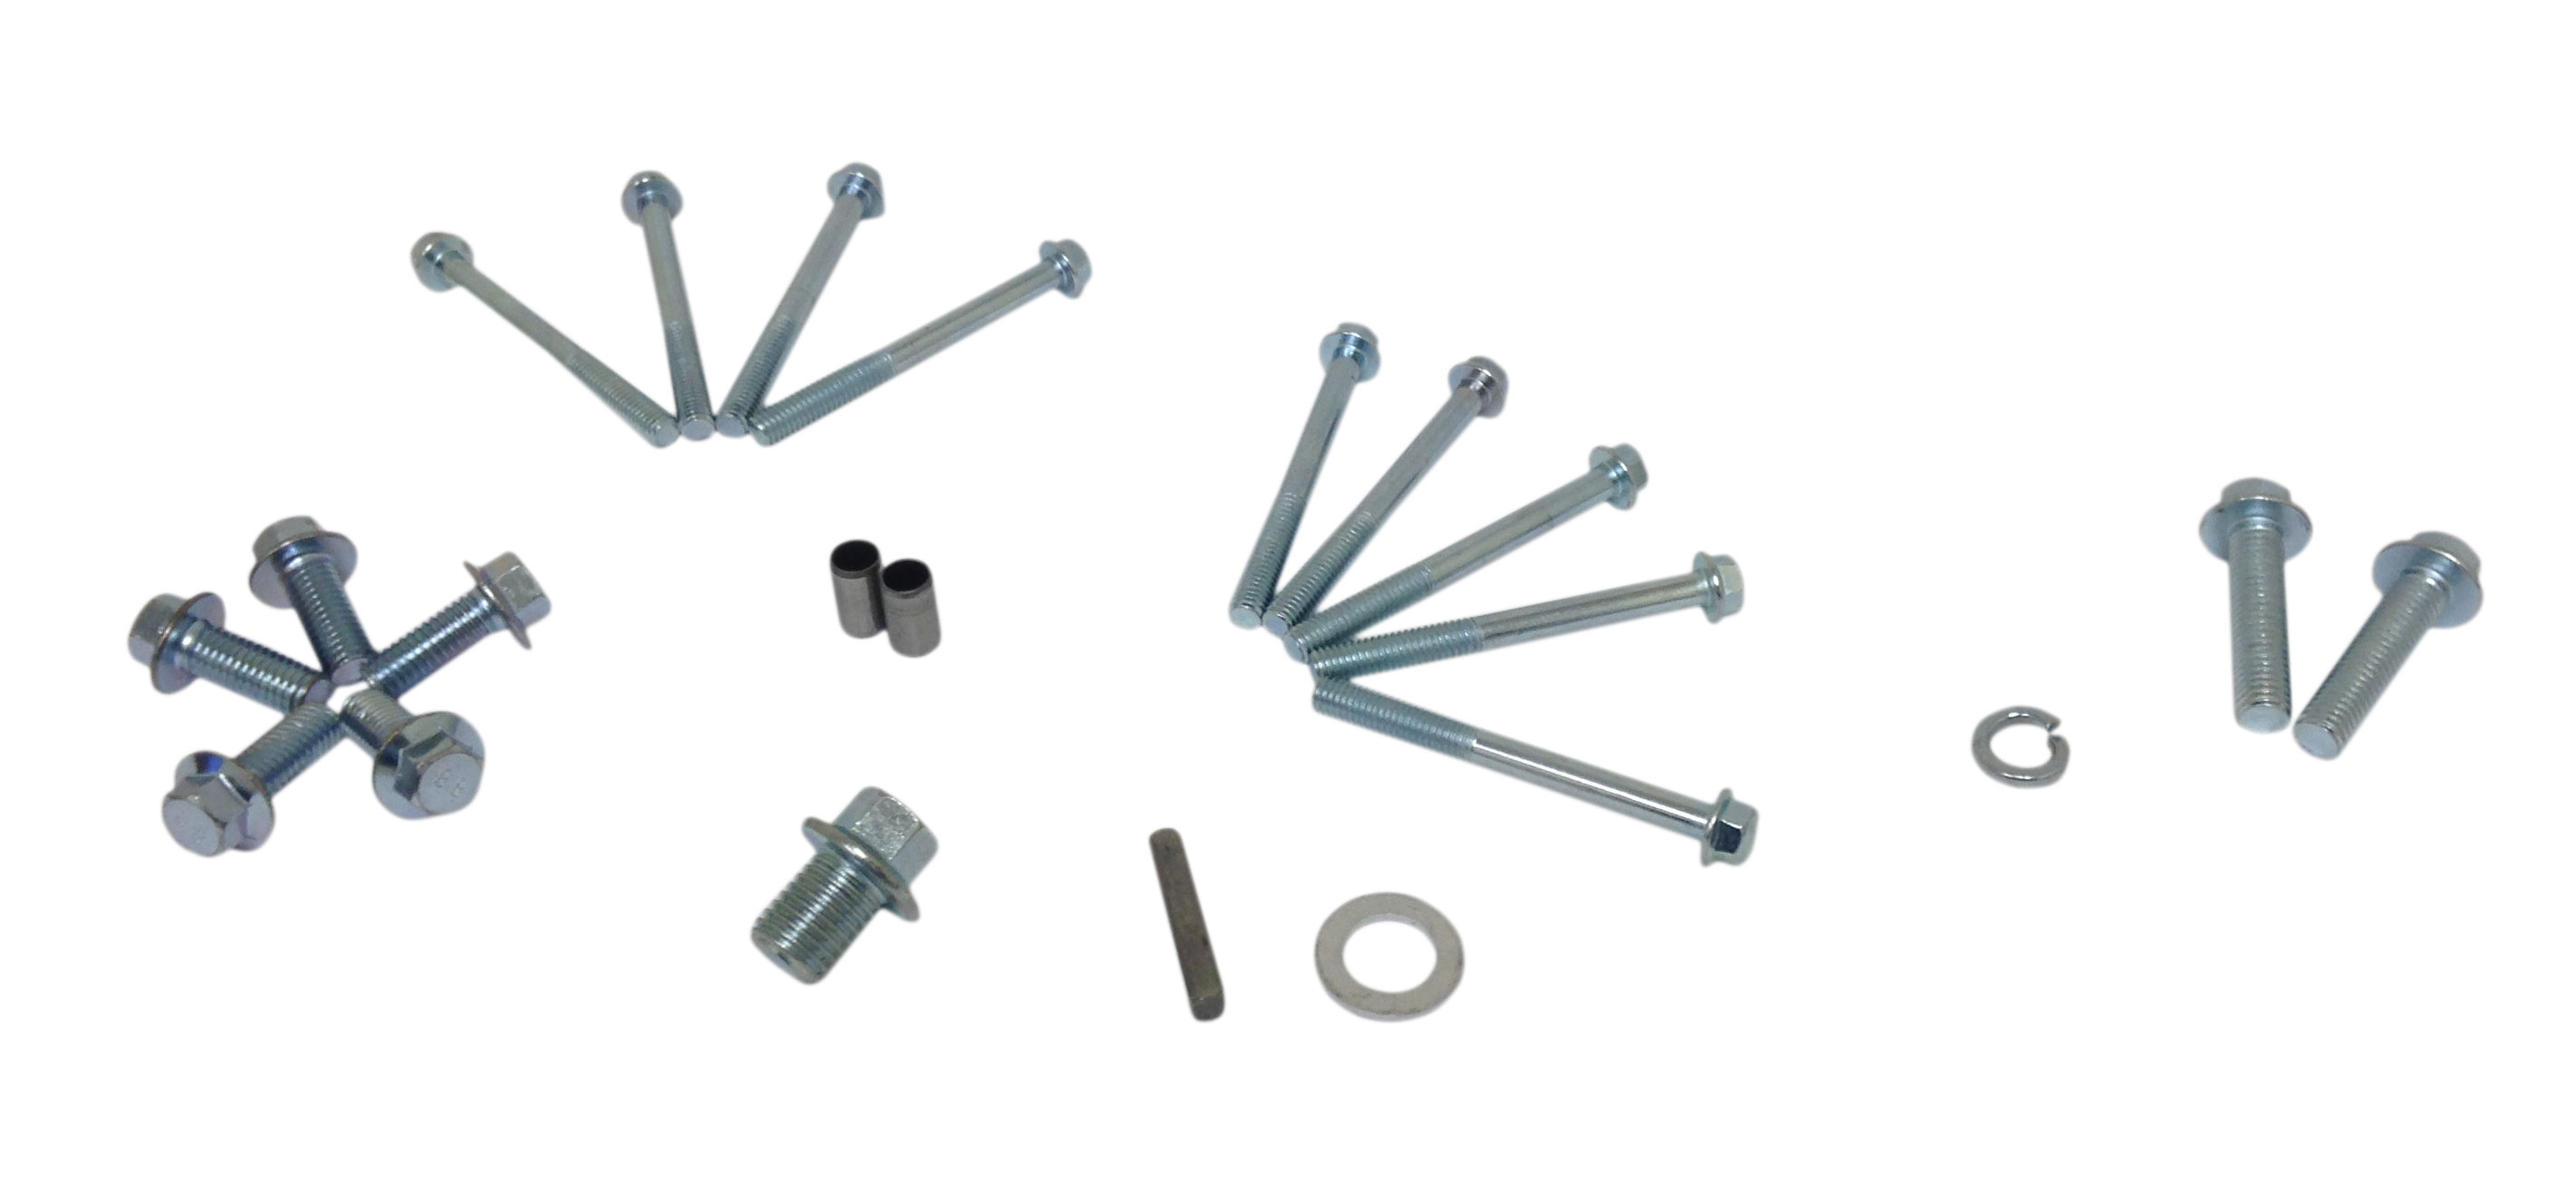 Screw and Key Kit for 2:1 Reduction Gearbox for Honda 6